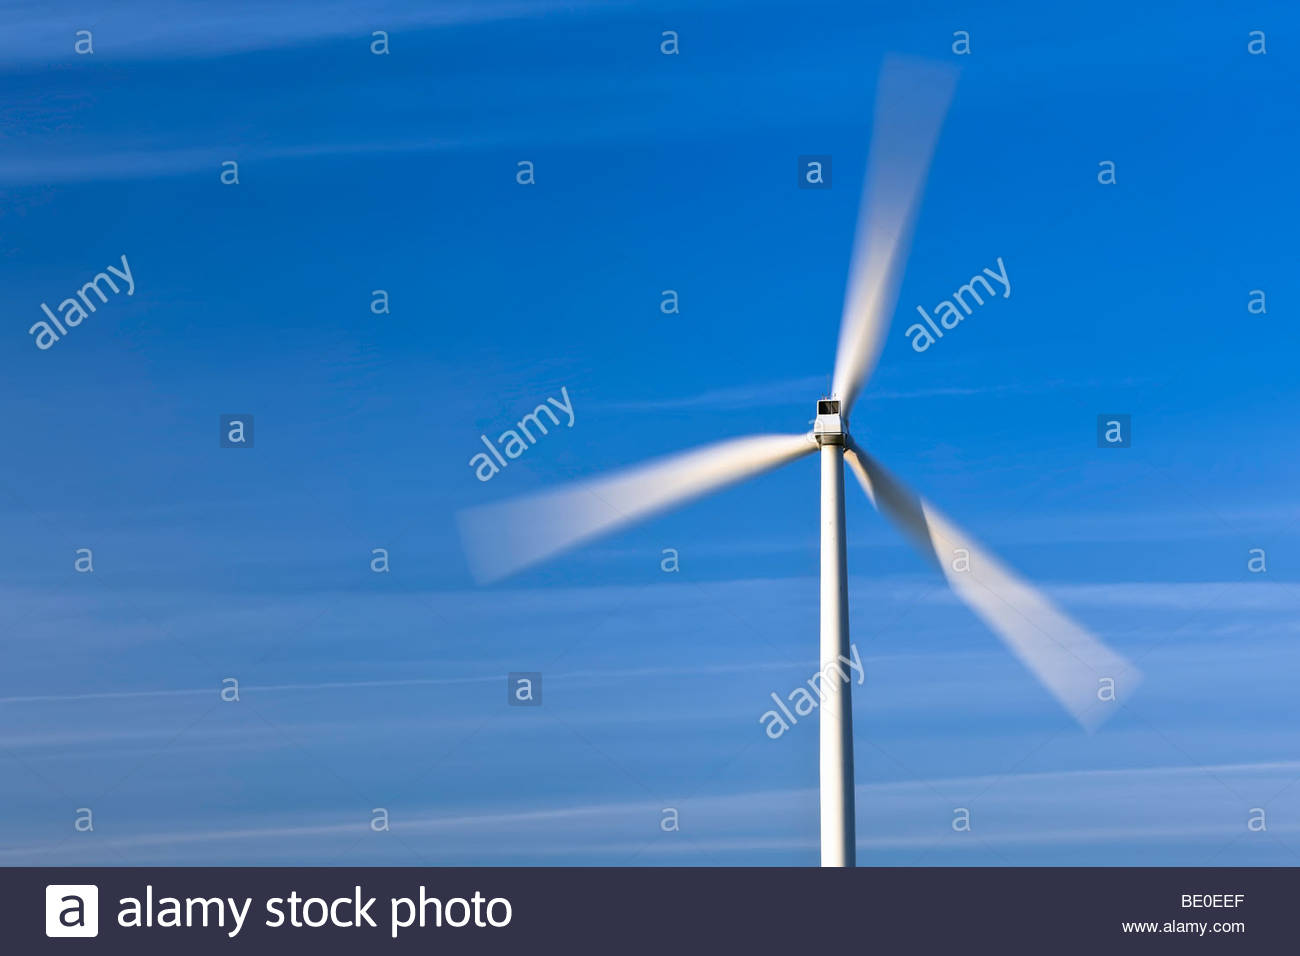 Wind turbine, blades in motion - Stock Image